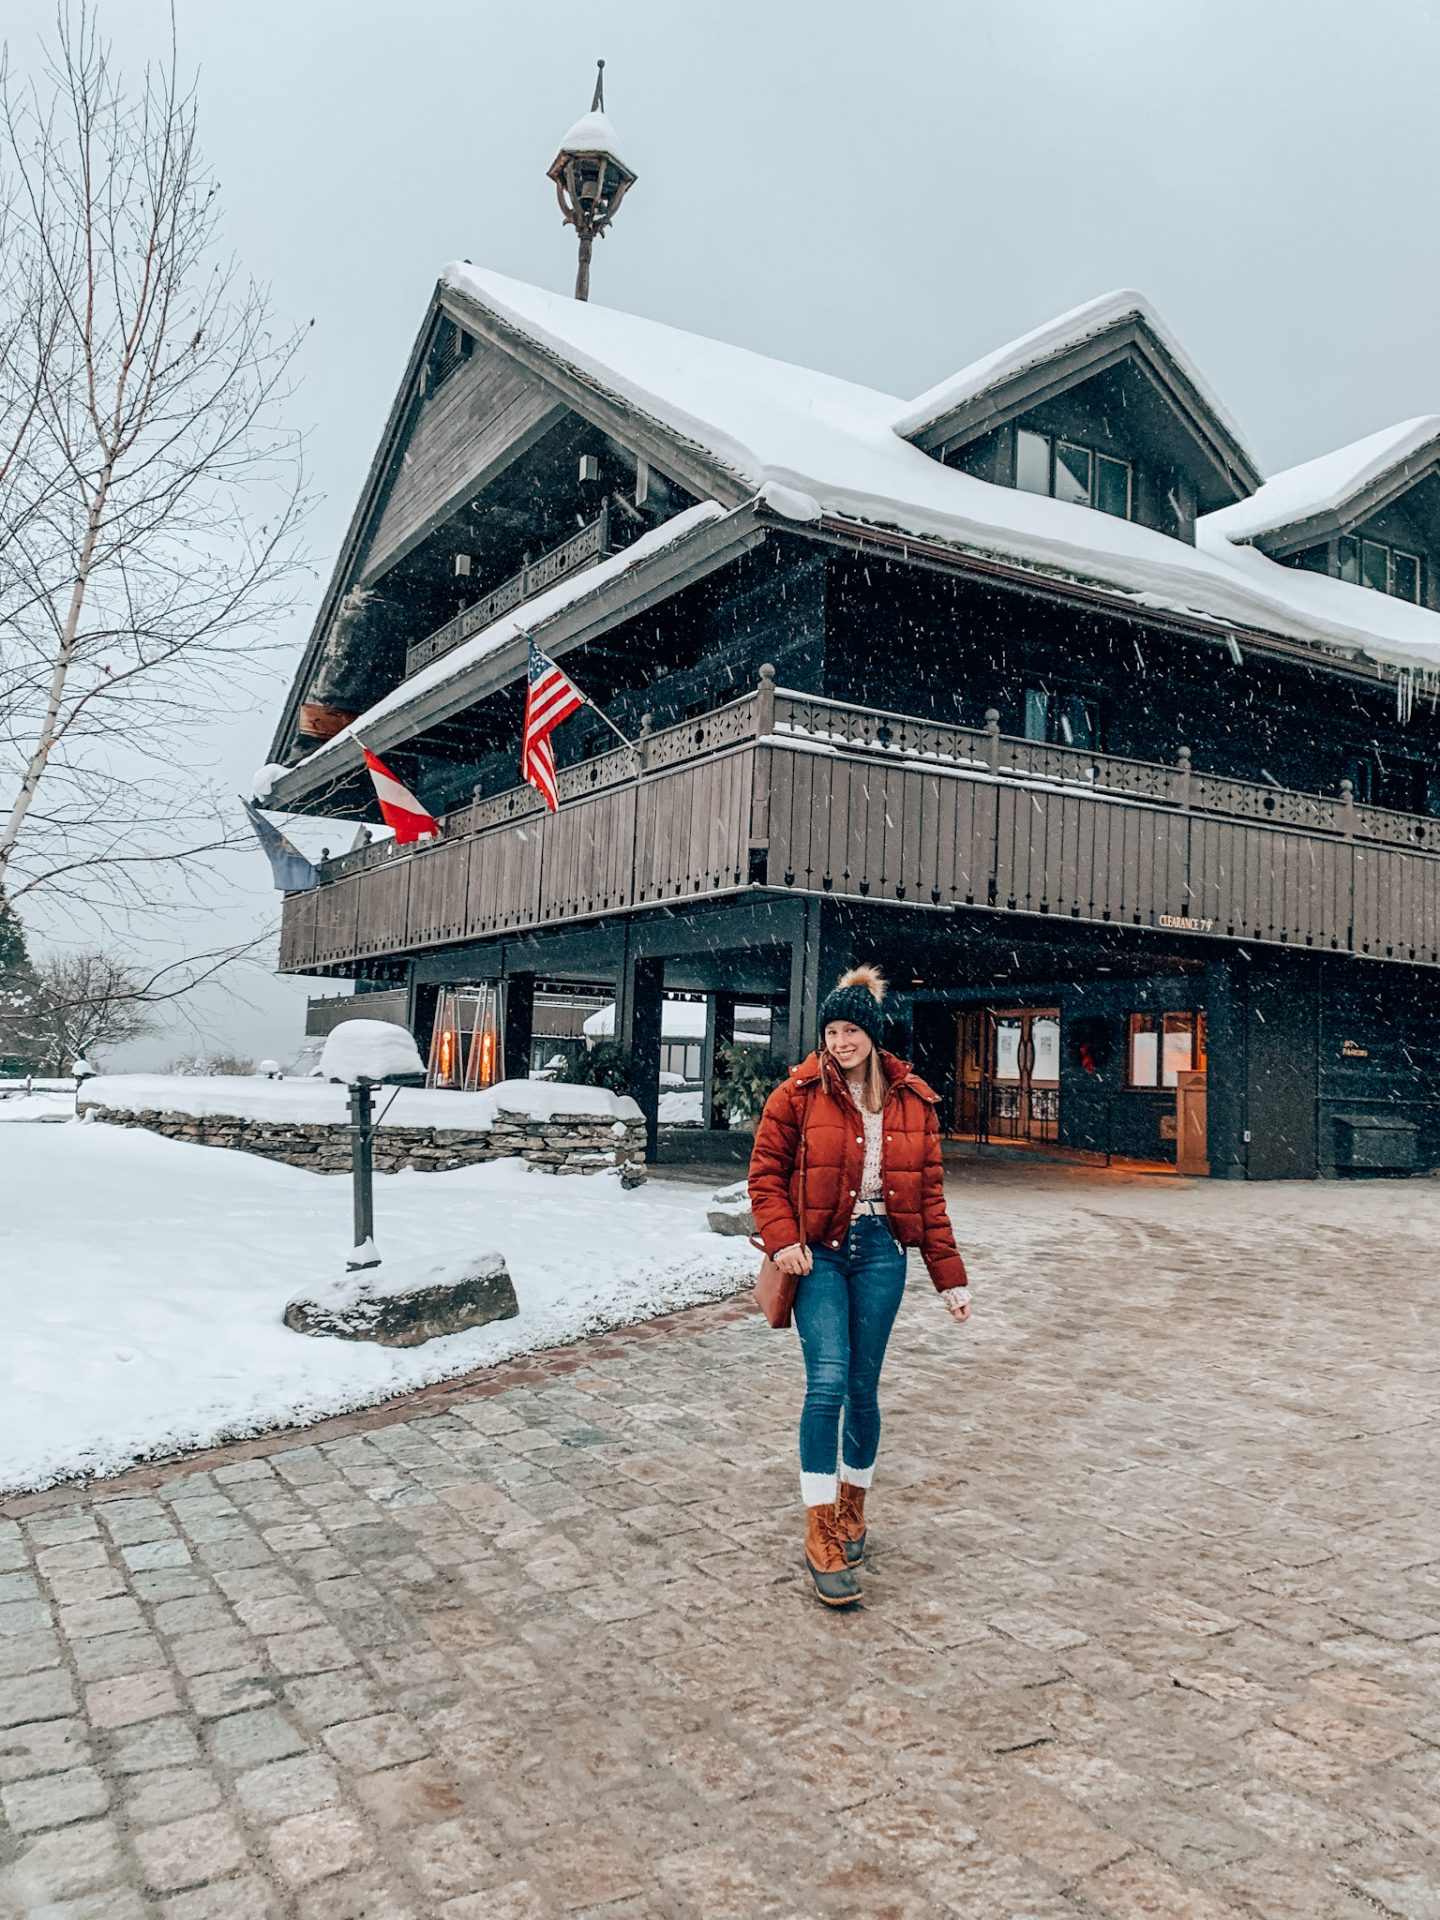 Girl poses in front of the Von Trapp Family Lodge in Stowe, VT in winter weekend